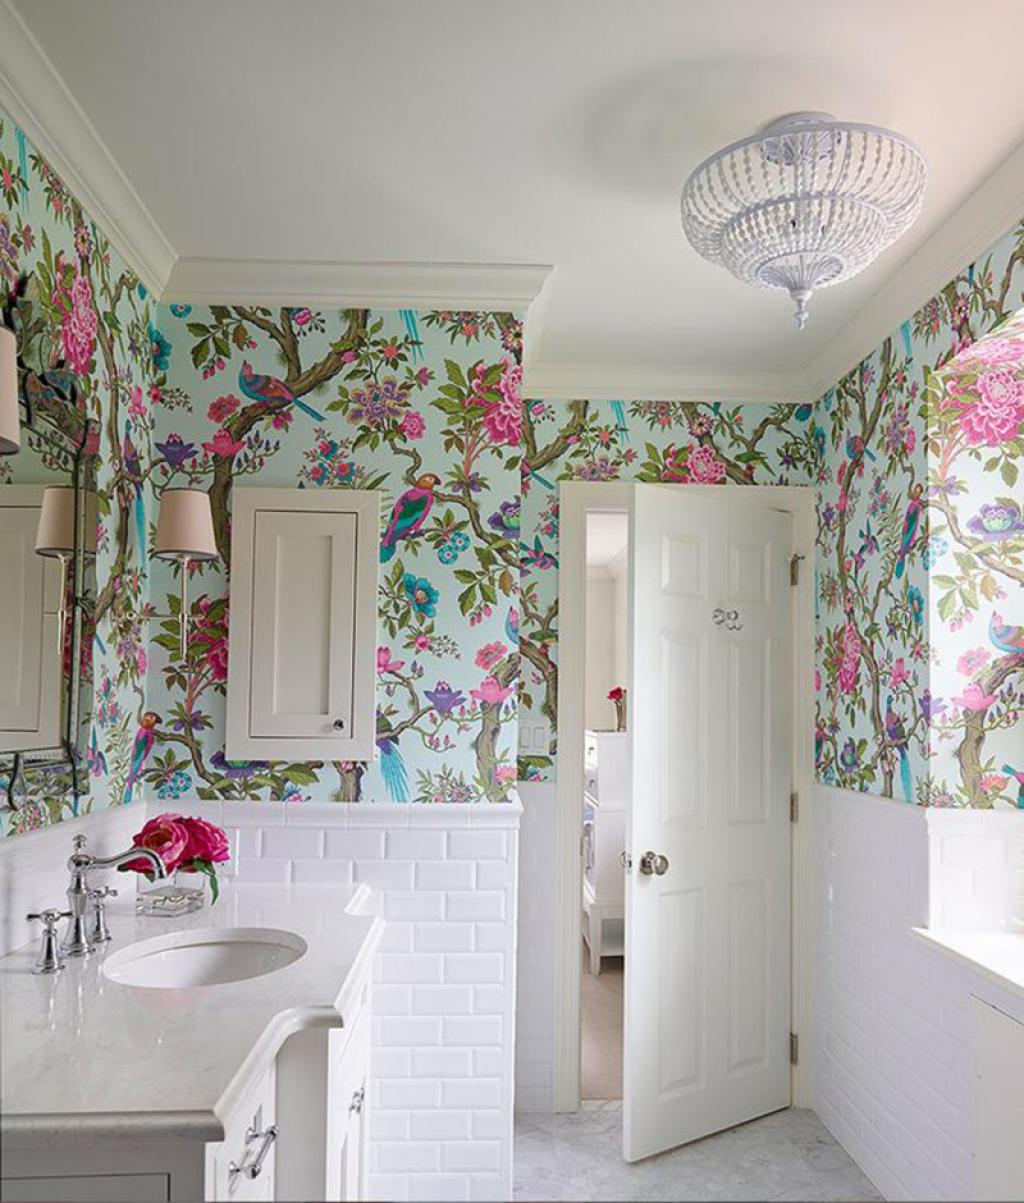 Floral royal bathroom wallpaper ideas on small white modern bathroom home inspiring Wallpaper home design ideas